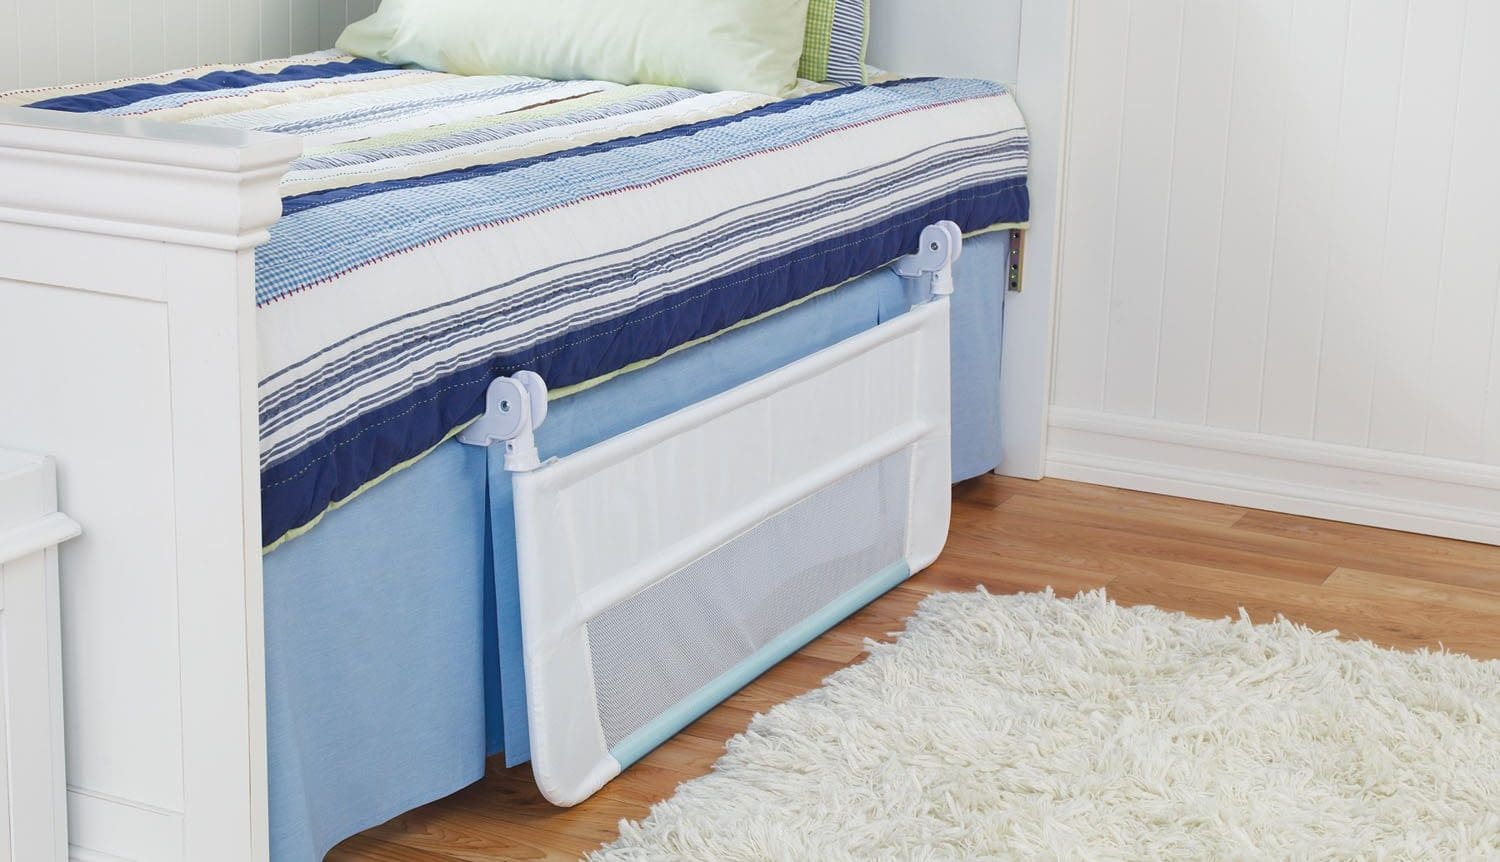 white-toddler-bed-with-rails-toddler-bed-guard-for-double-bed-Toddler-Bed-Safety-Rails